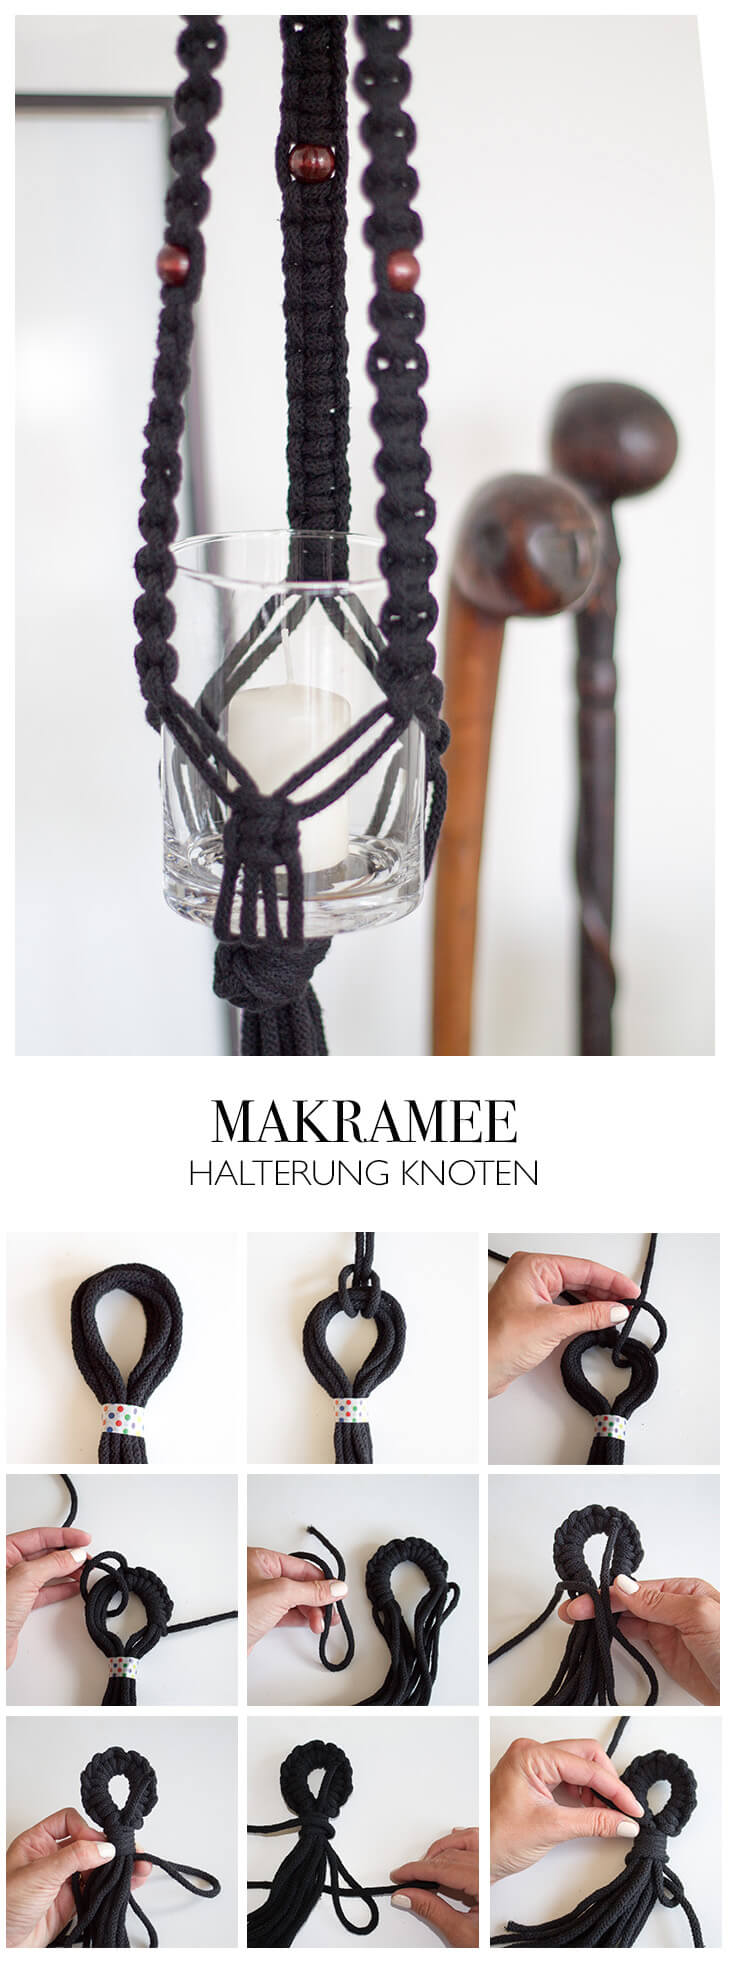 diy makramee kn pfen anleitung aus kreuzknoten. Black Bedroom Furniture Sets. Home Design Ideas